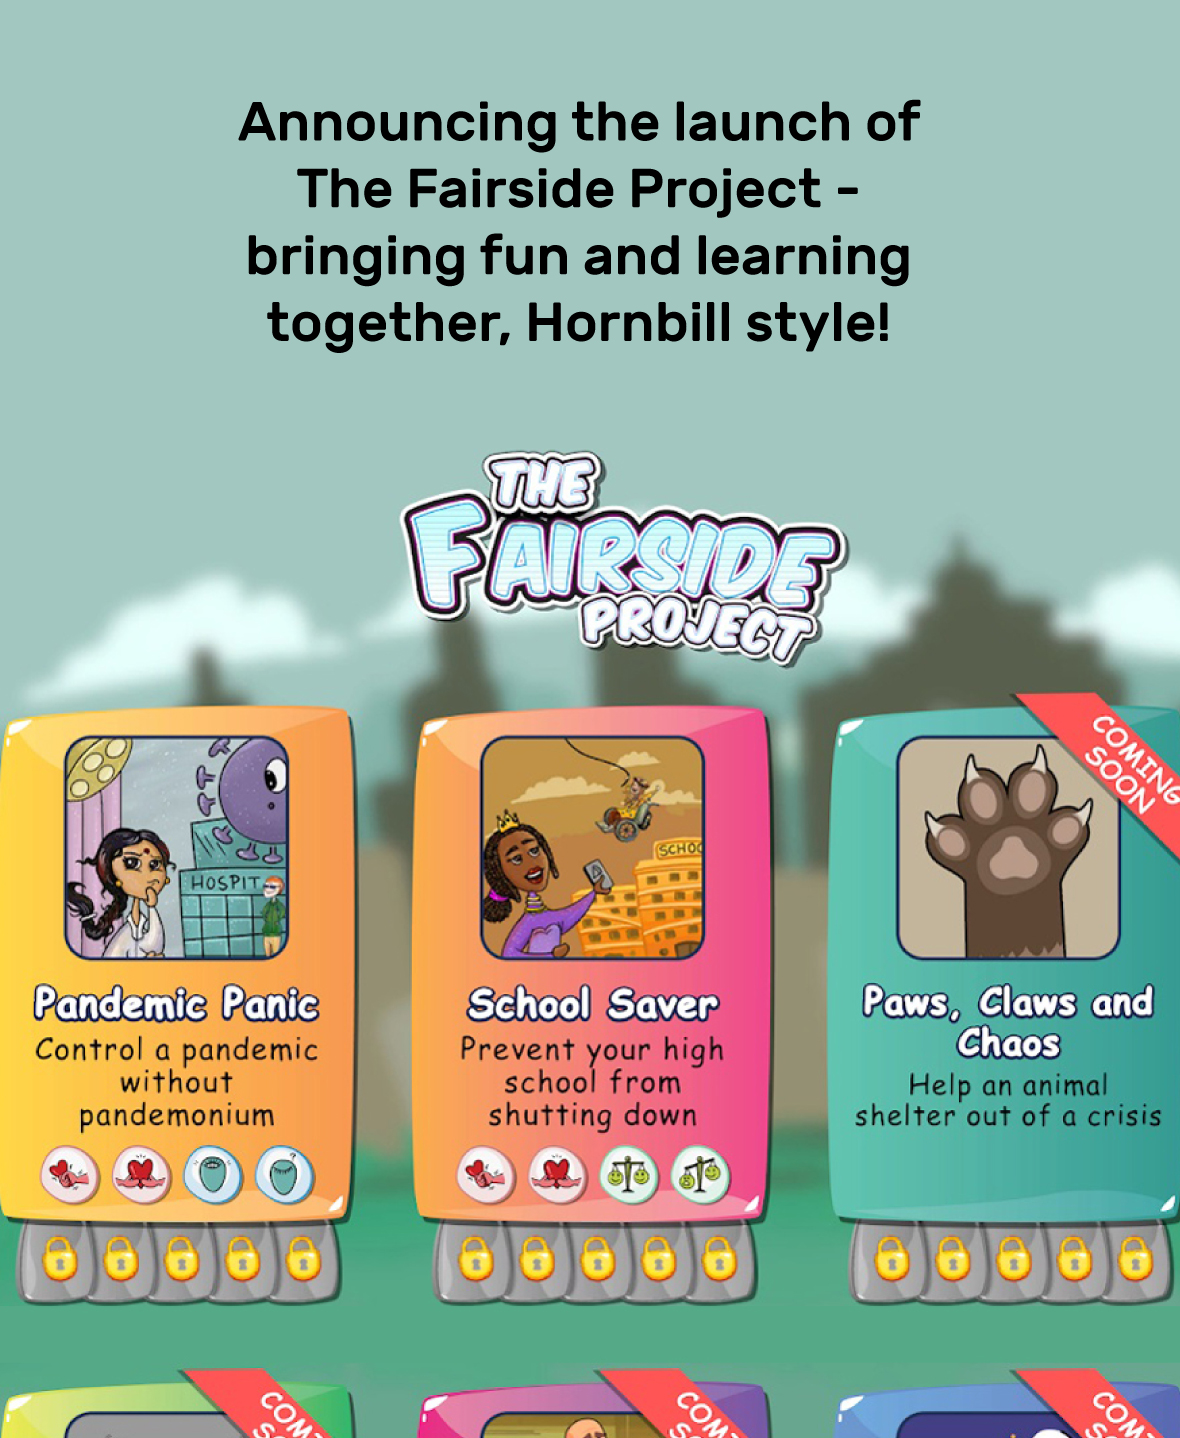 Announcing the launch of The Fairside Project